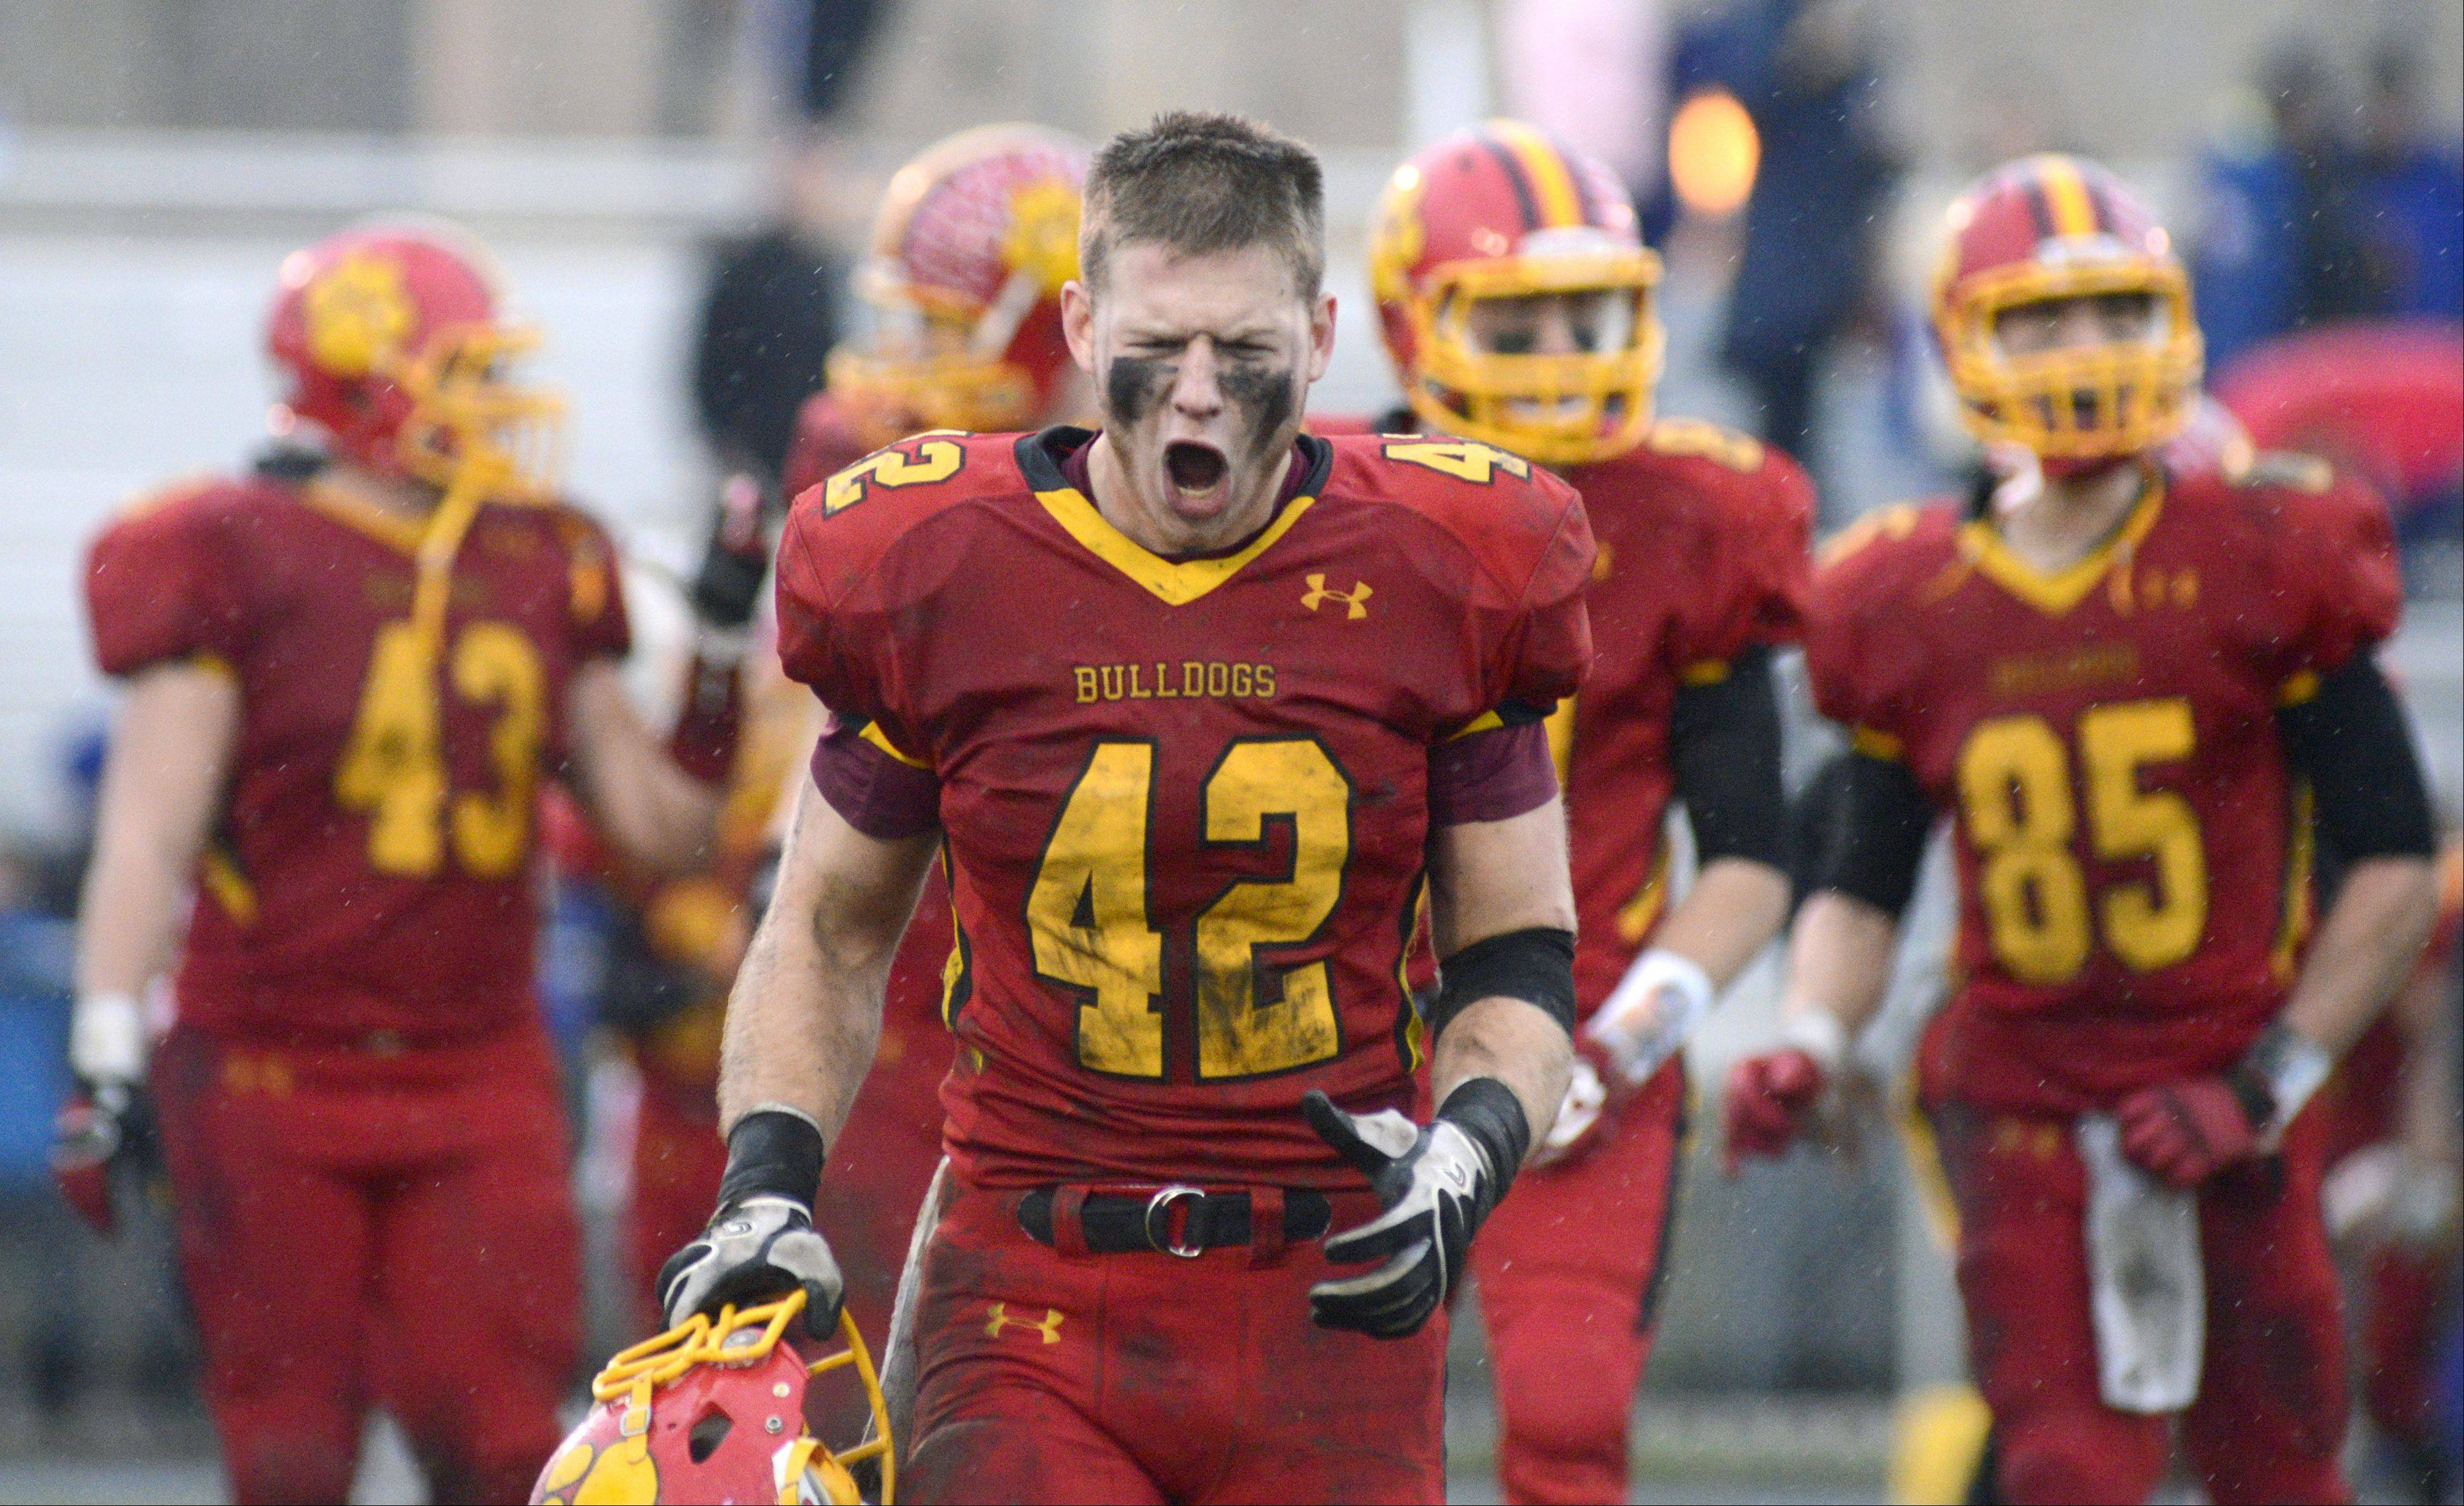 Images: Lake Forest vs. Batavia playoff football